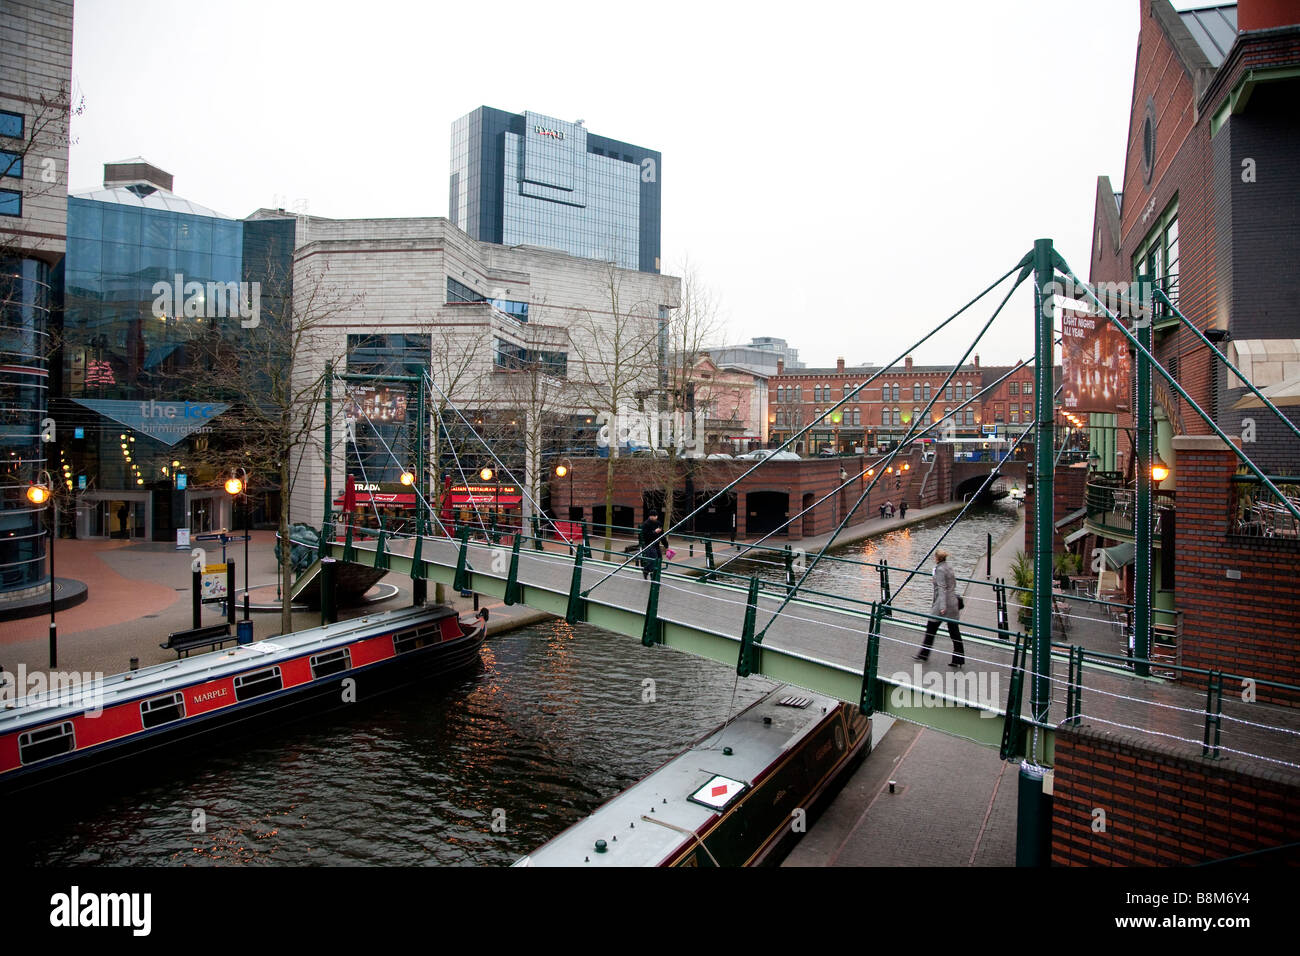 The Icc And Canal At Brindley Place Birmingham Uk At Dusk Stock Photo 22572120 Alamy